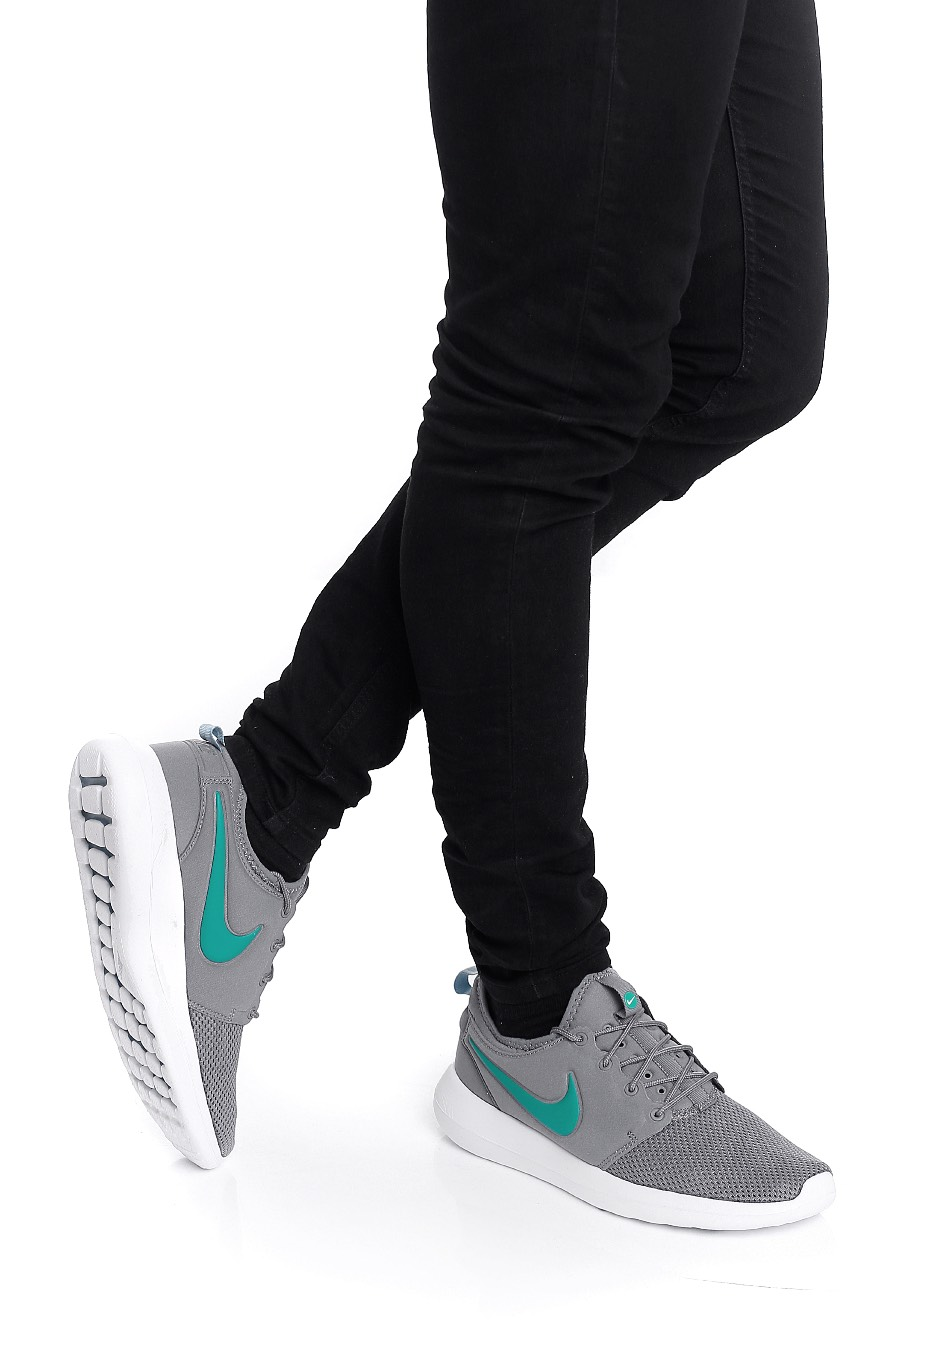 ad075f0cde1 ... cheap nike roshe two cool grey stadium green mica blue white shoes  cb0b4 9d1d6